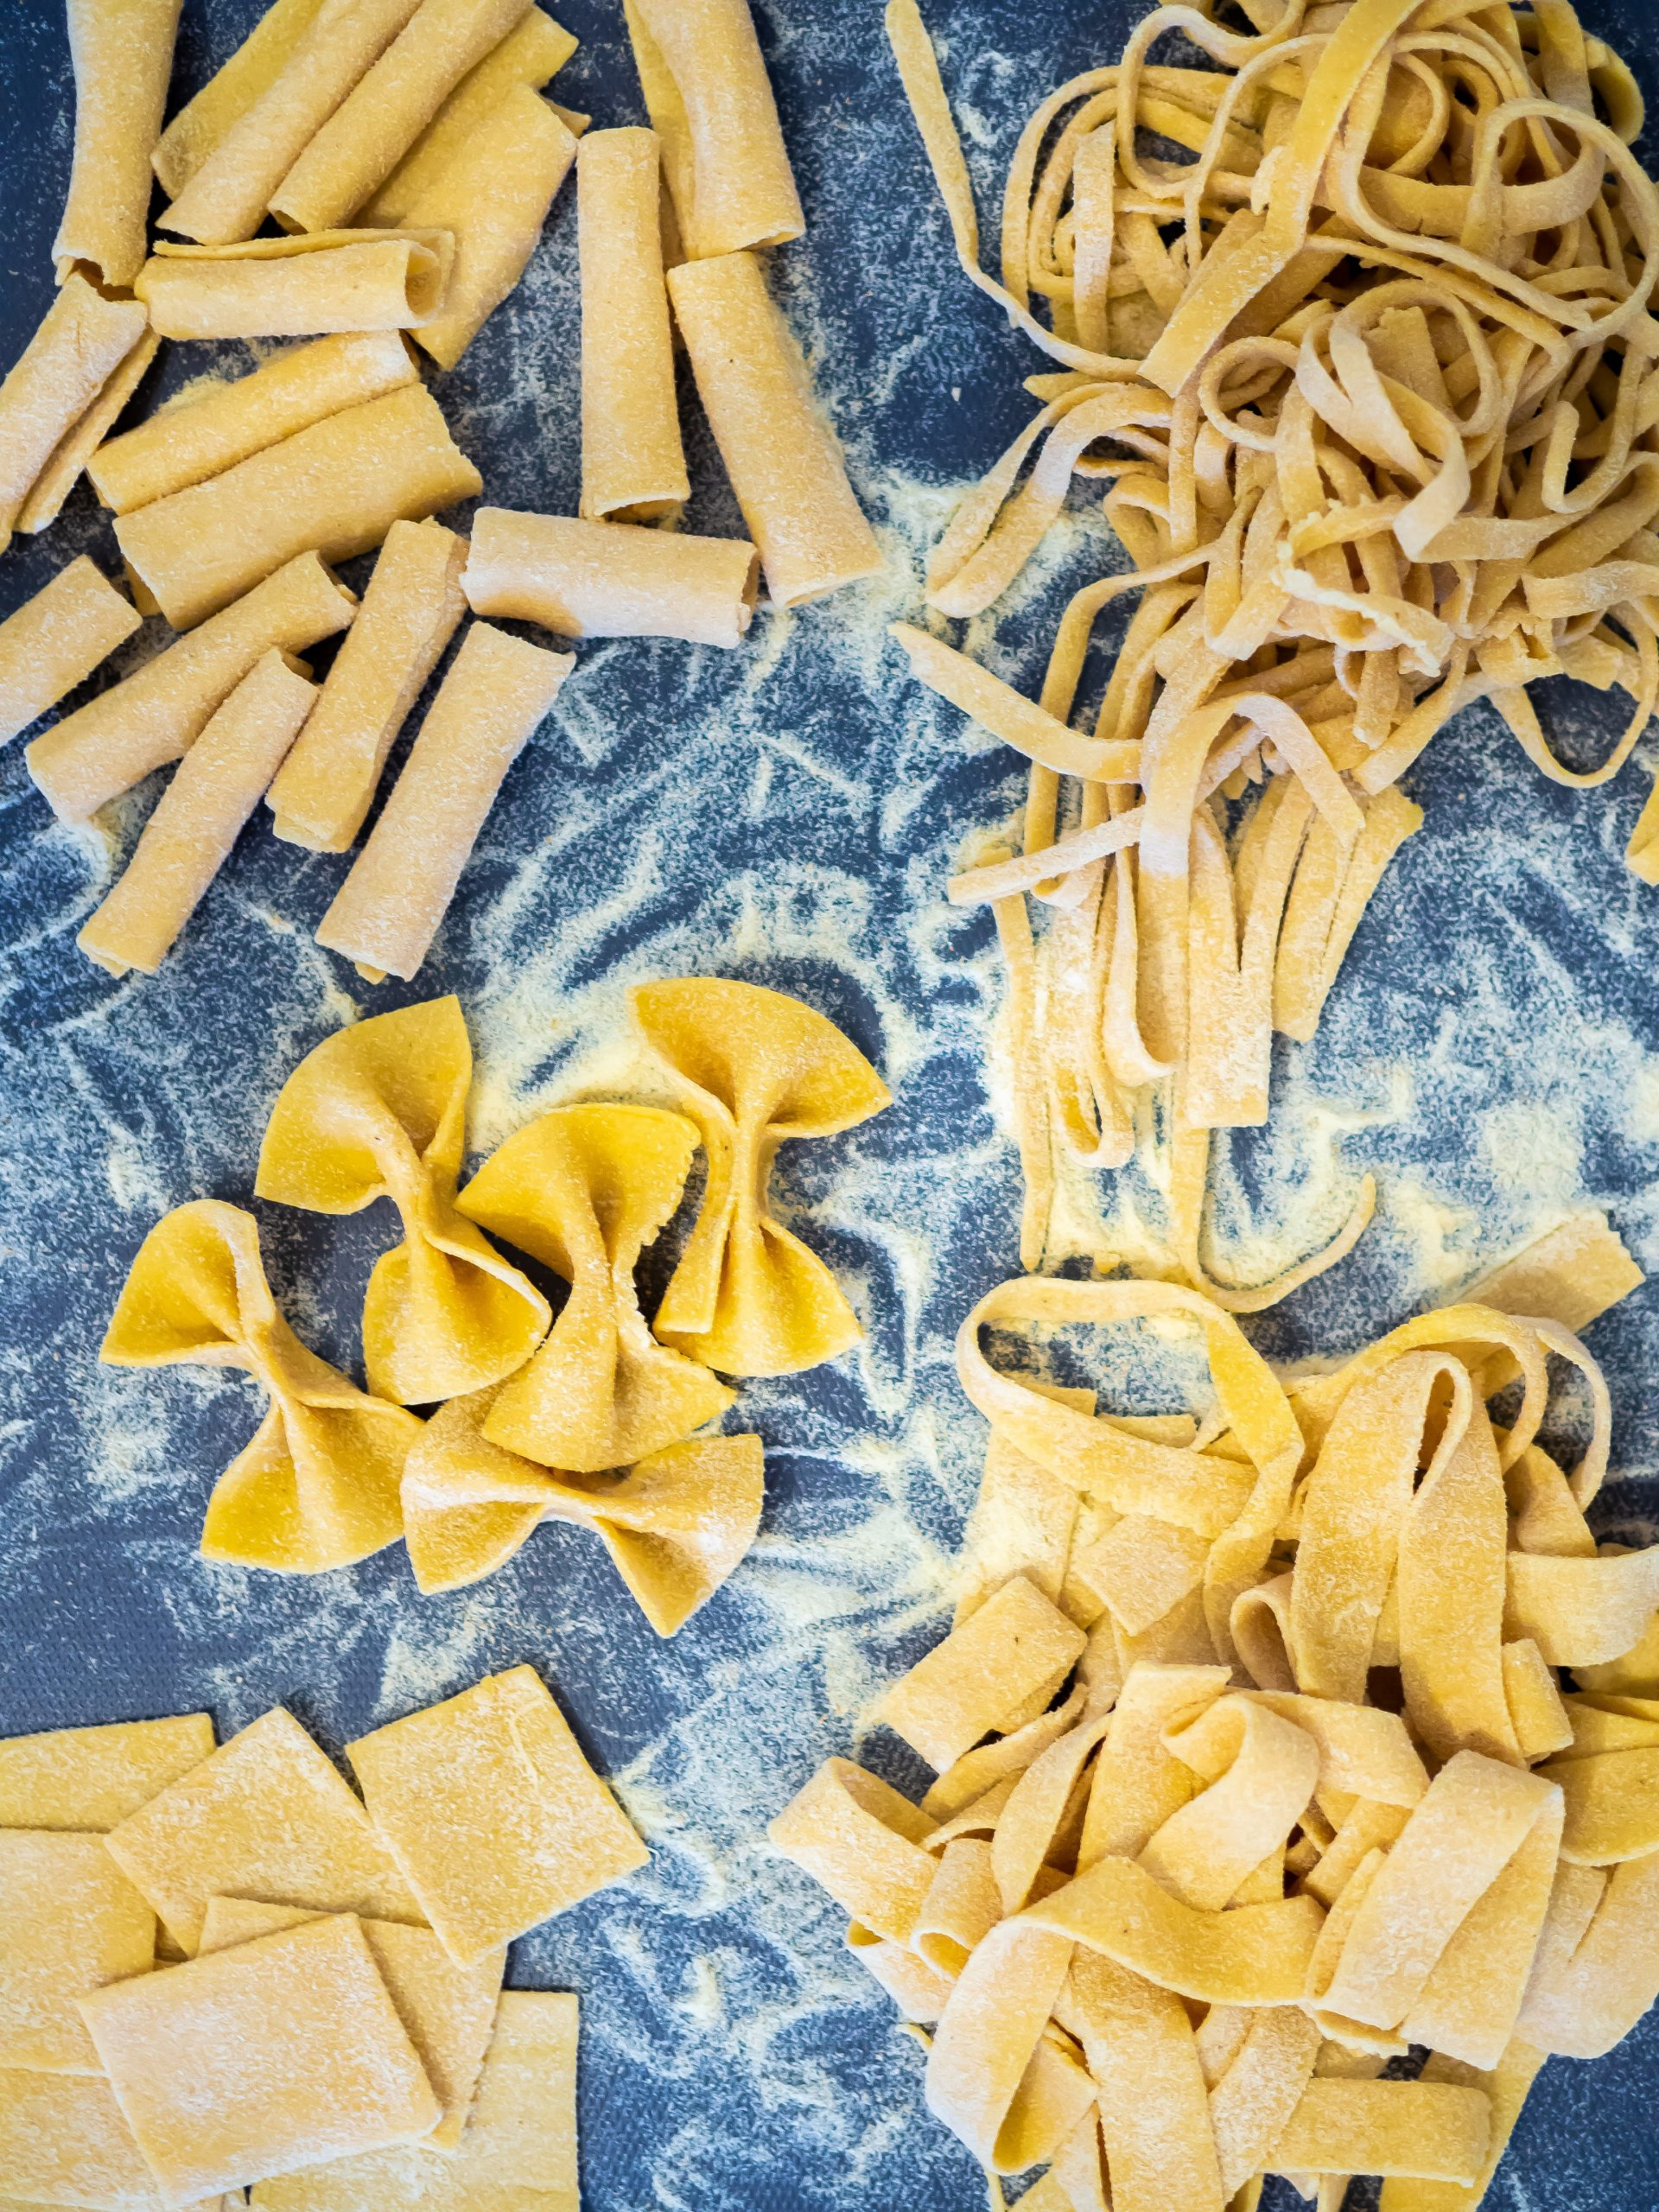 Home made pasta shapes - tagliatelle, farfalle, pappardelle